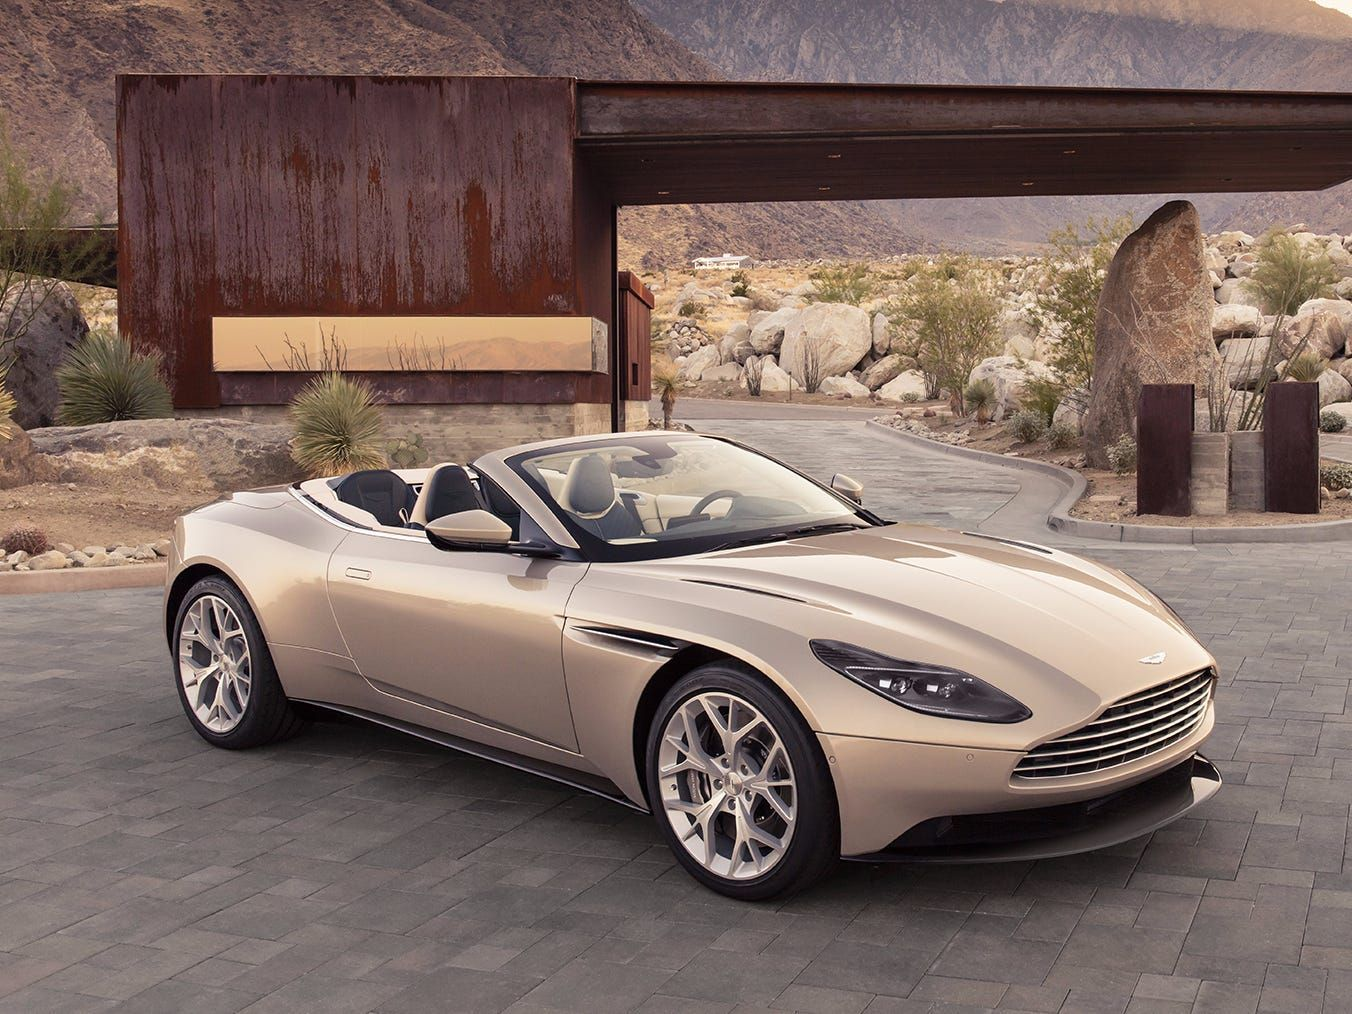 The Next Great Aston Martin Convertible Has Arrived In 2020 Aston Martin Convertible Aston Martin Db11 Sports Cars Luxury